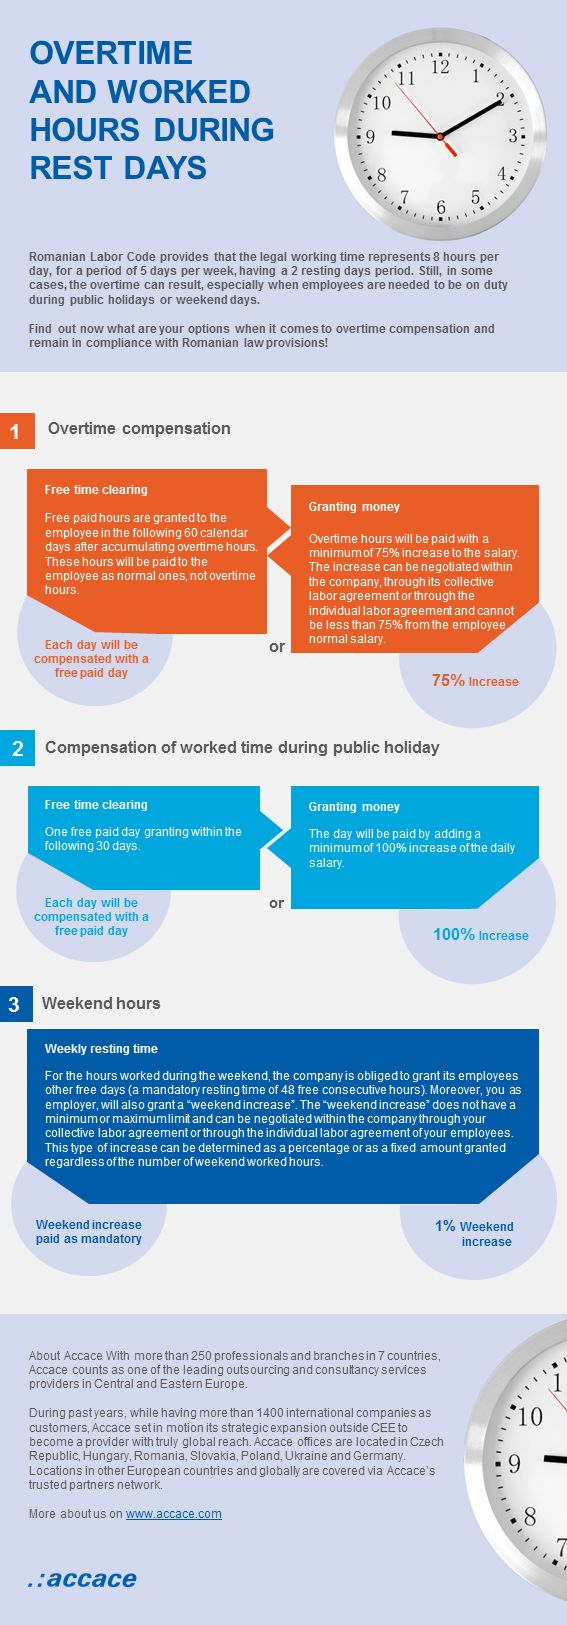 Overtime and worked hours during rest days | Infographic